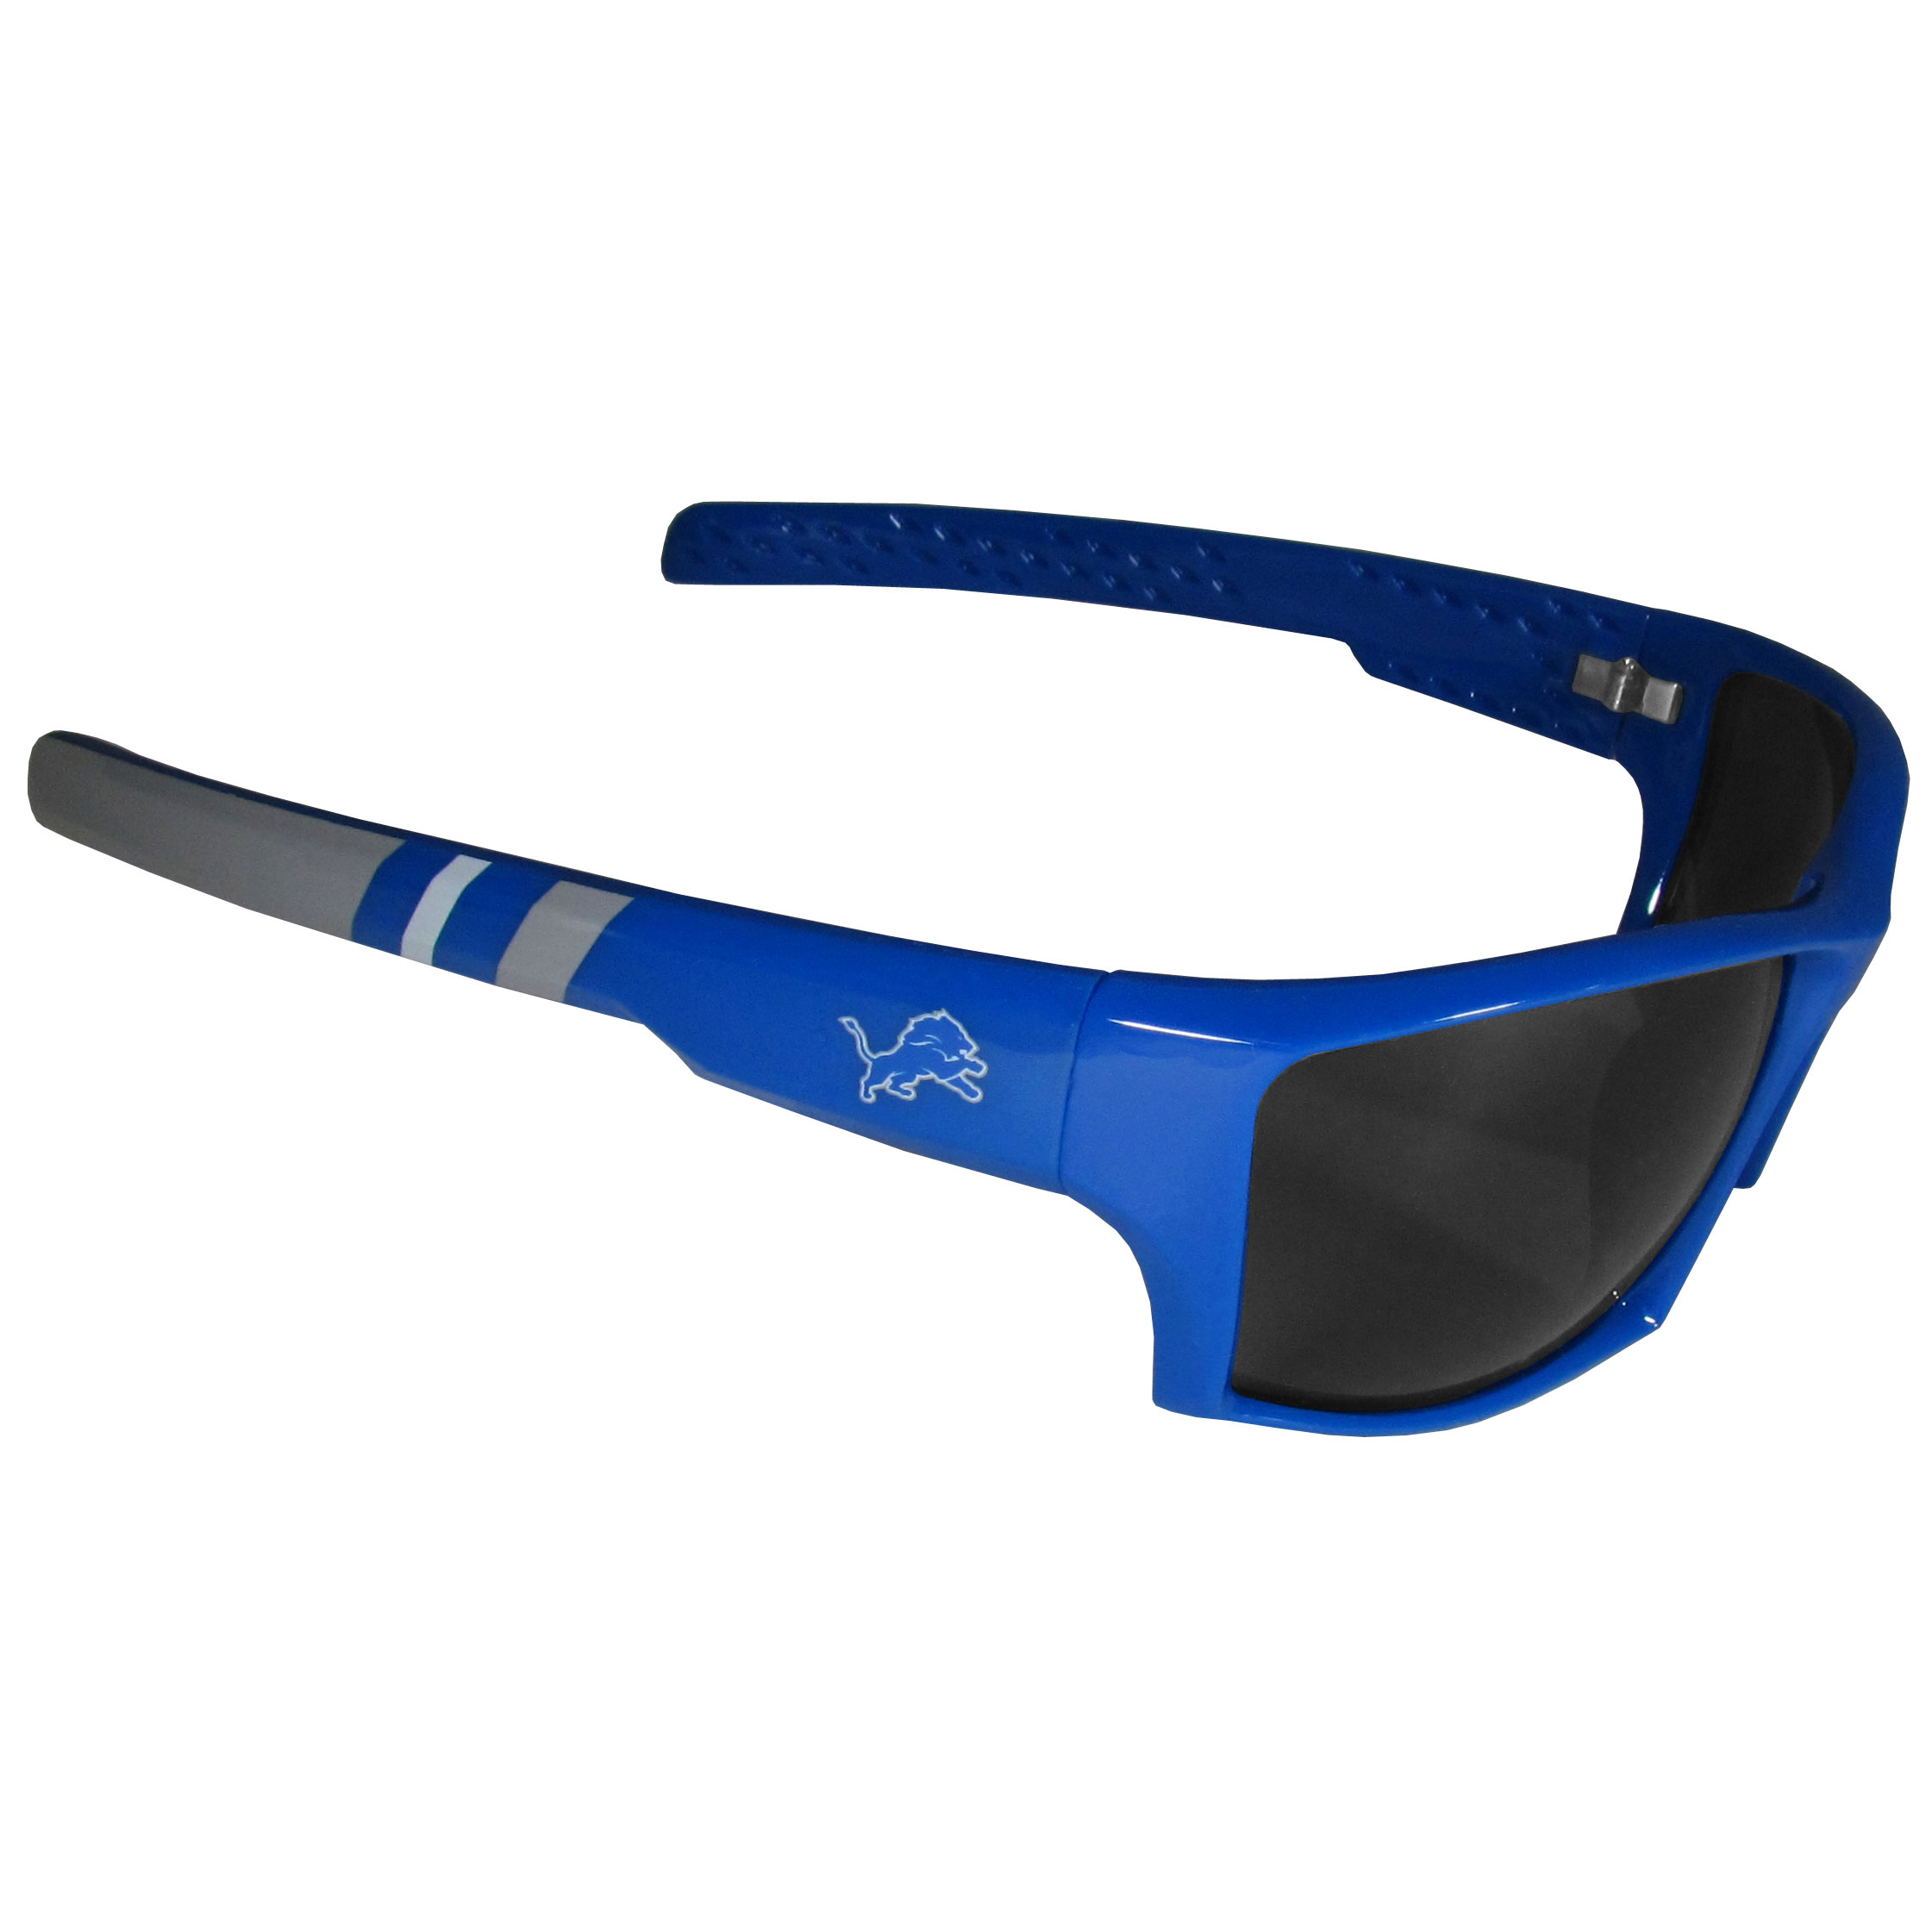 Detroit Lions Edge Wrap Sunglasses - Be an icon of edgy style while you're in the stadium cheering your Detroit Lions to victory with our polarized wrap sunglasses that feature 100% UVA/UVB rating for maximum UV protection. The light-weight frames are built to last with flex hinges for comfort and durability which make them perfect for driving or just lounging by the pool. The colorful rubber grips on the arms of these fashionable sunglasses make them perfect for someone with an active lifestyle. Whether you are hiking, fishing, boating, running on the beach, golfing or playing your favorite sport these designer frames will set you apart. Our edge wrap sunglasses are true quality eyewear at an affordable price. The wrap style frames come with team colored stripes and team logos so you can show off your die-hard team pride while protecting your eyes from those bright sun rays.